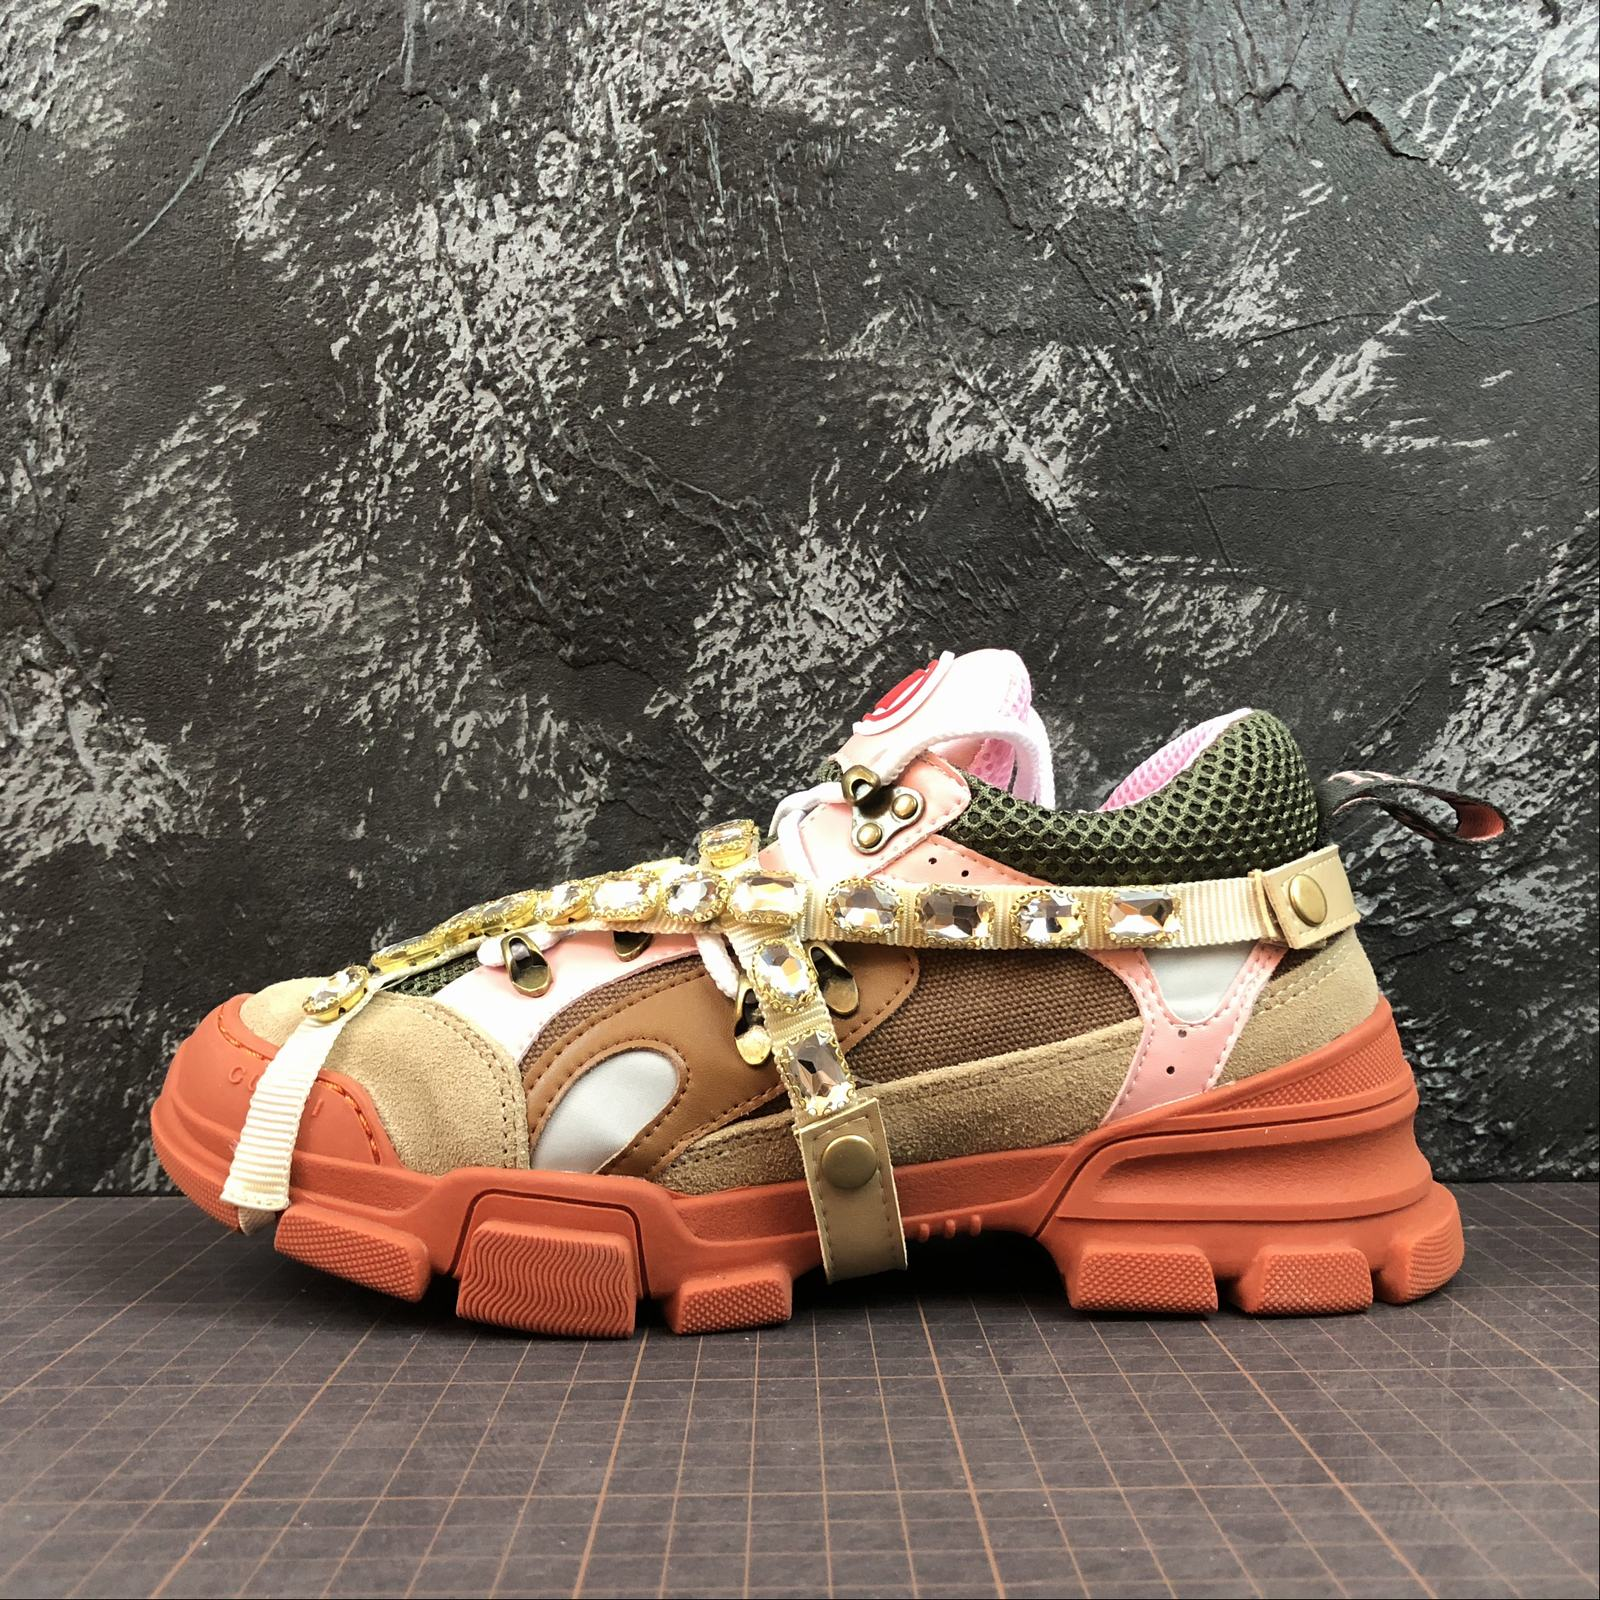 Женские кроссовки Gucci Flashtrek sneakers with removable crystals Orange